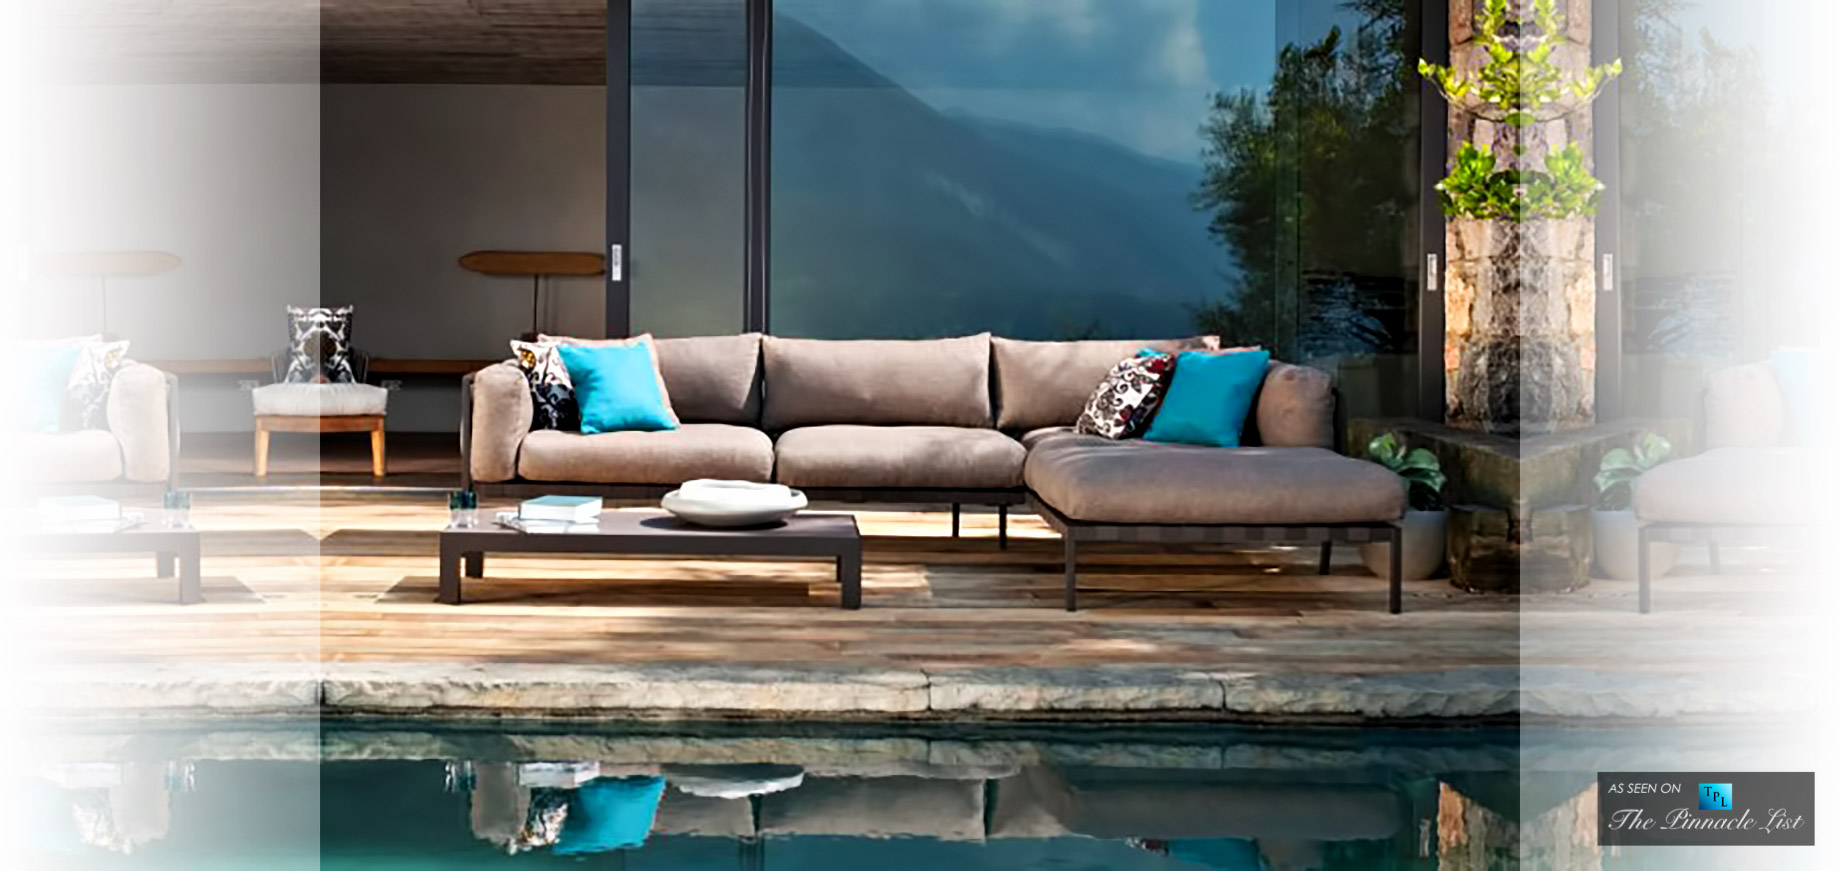 Garden Furniture Trends contemporary garden furniture living trends from europe for 2016 UKIUHUR